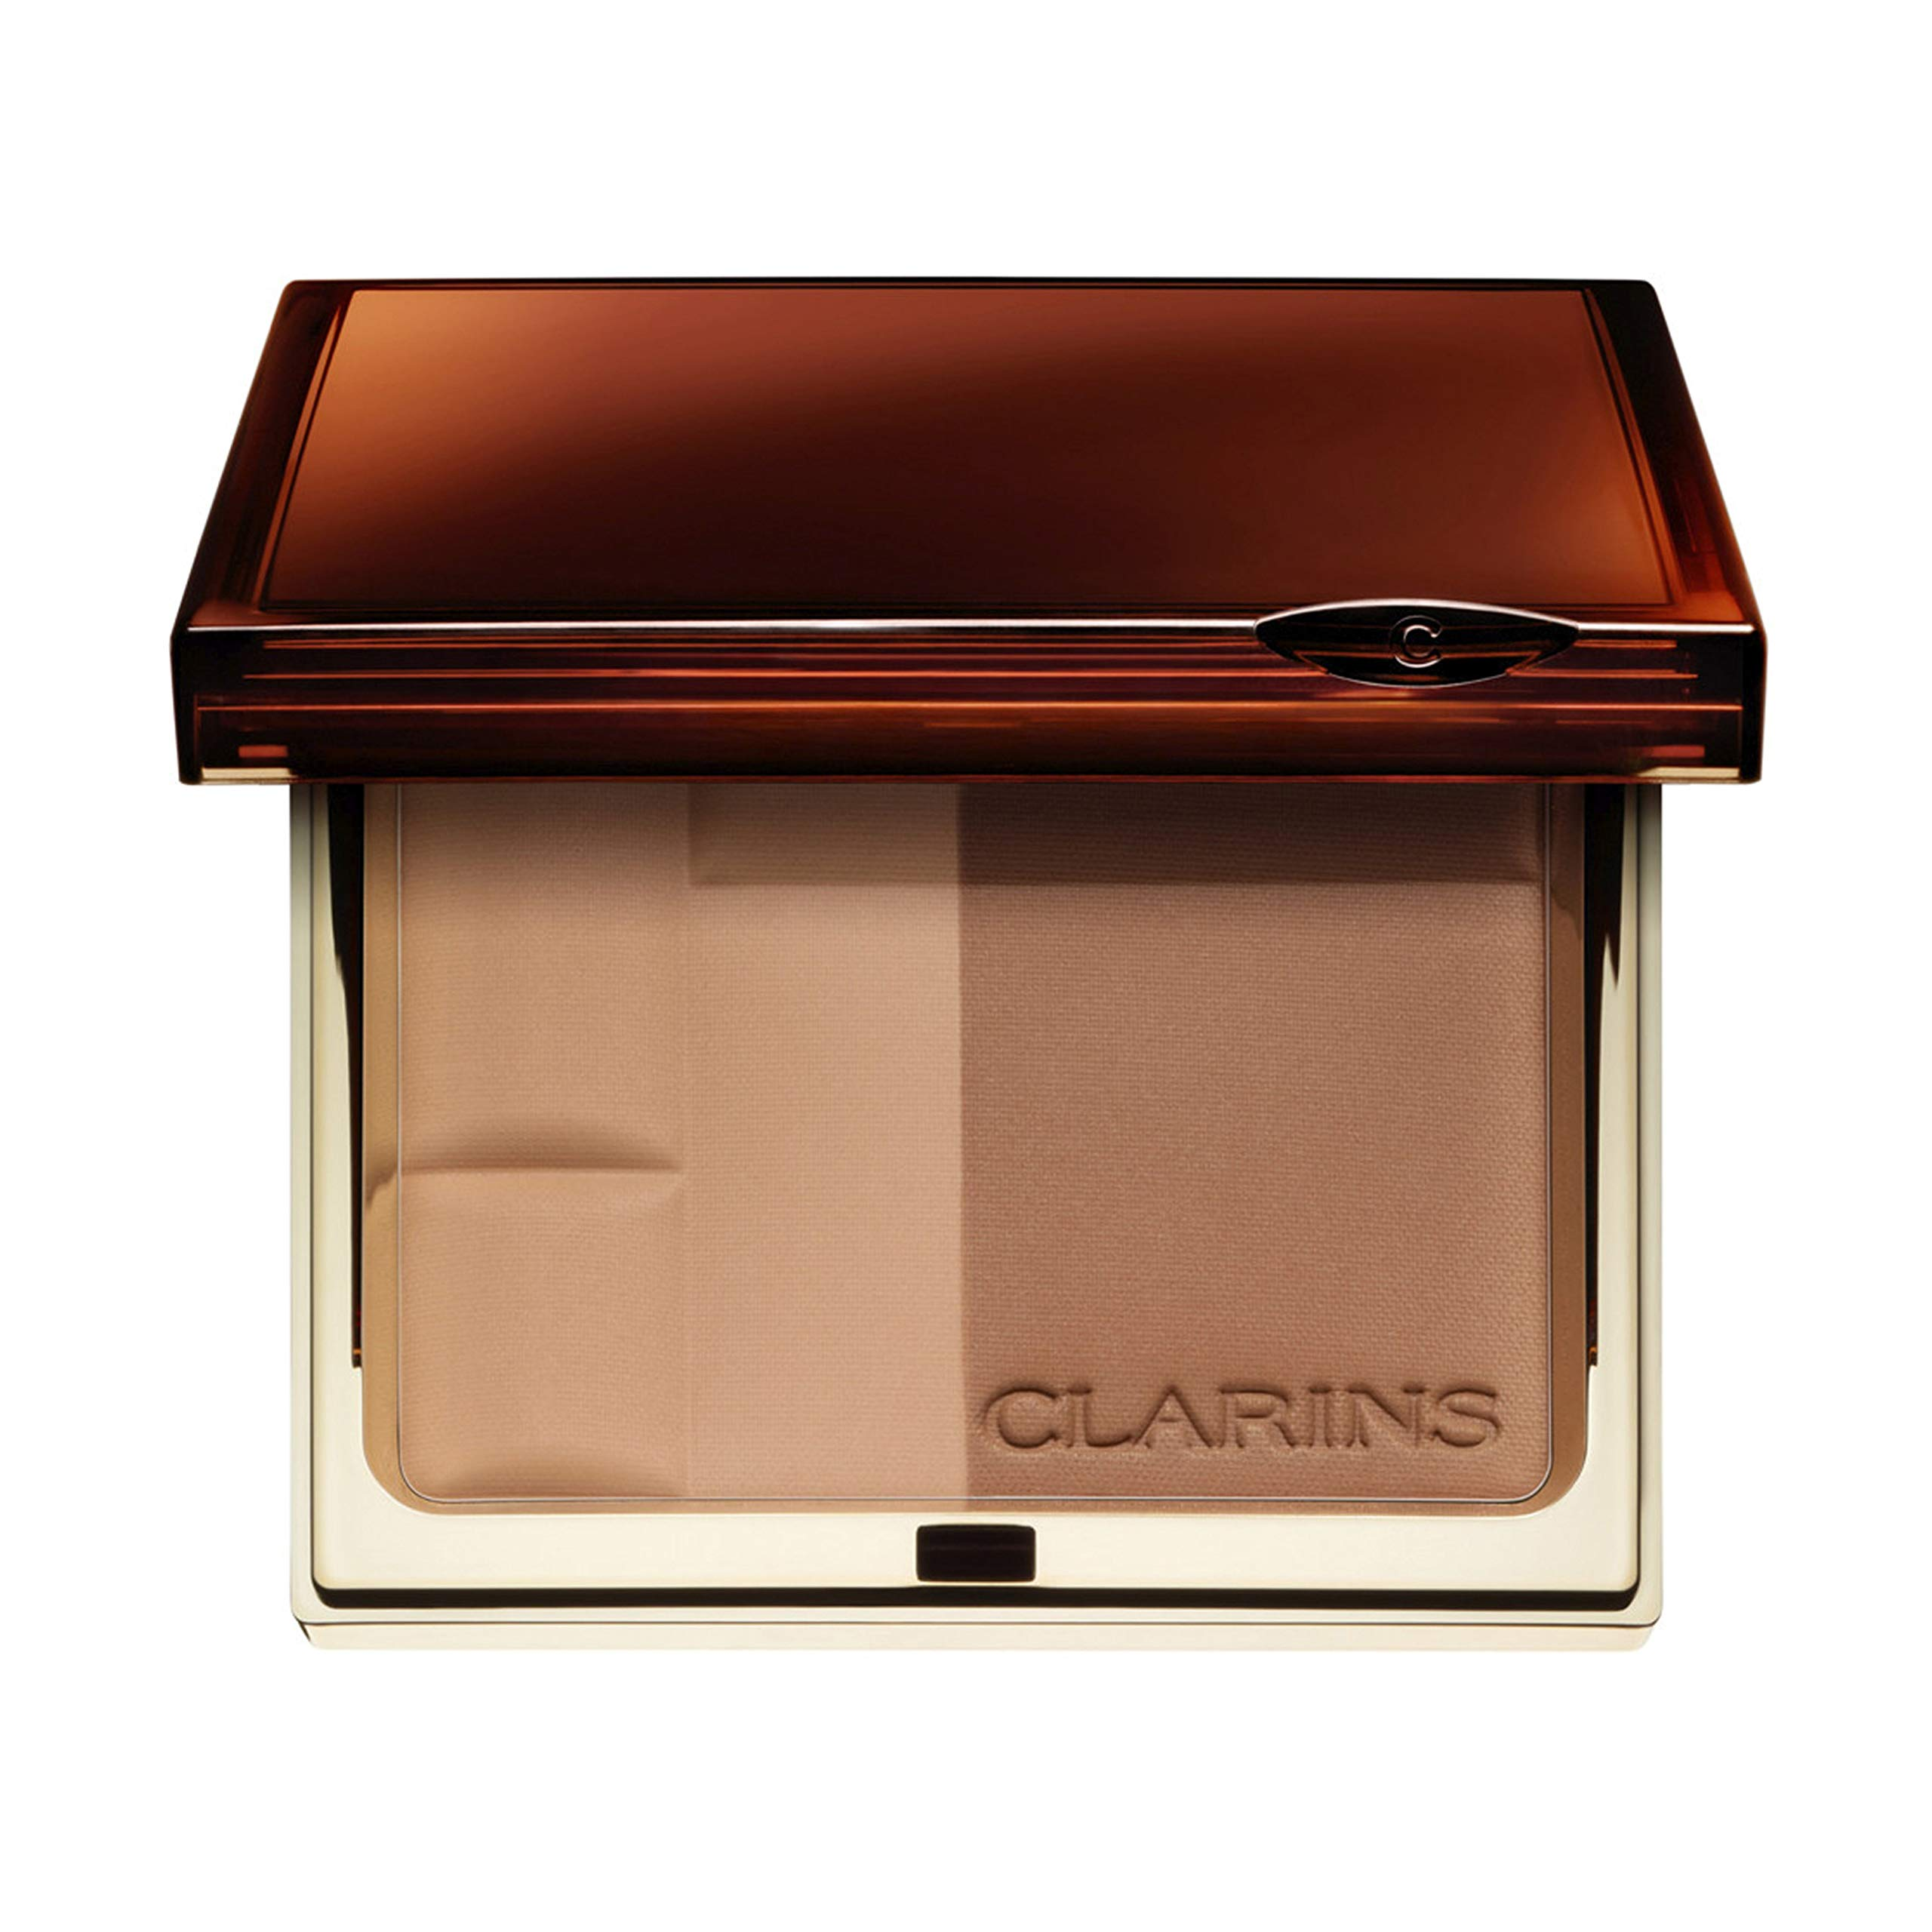 Clarins Bronzing Duo Mineral Powder Compact SPF 15-02 Medium 10g/0.35oz by Clarins